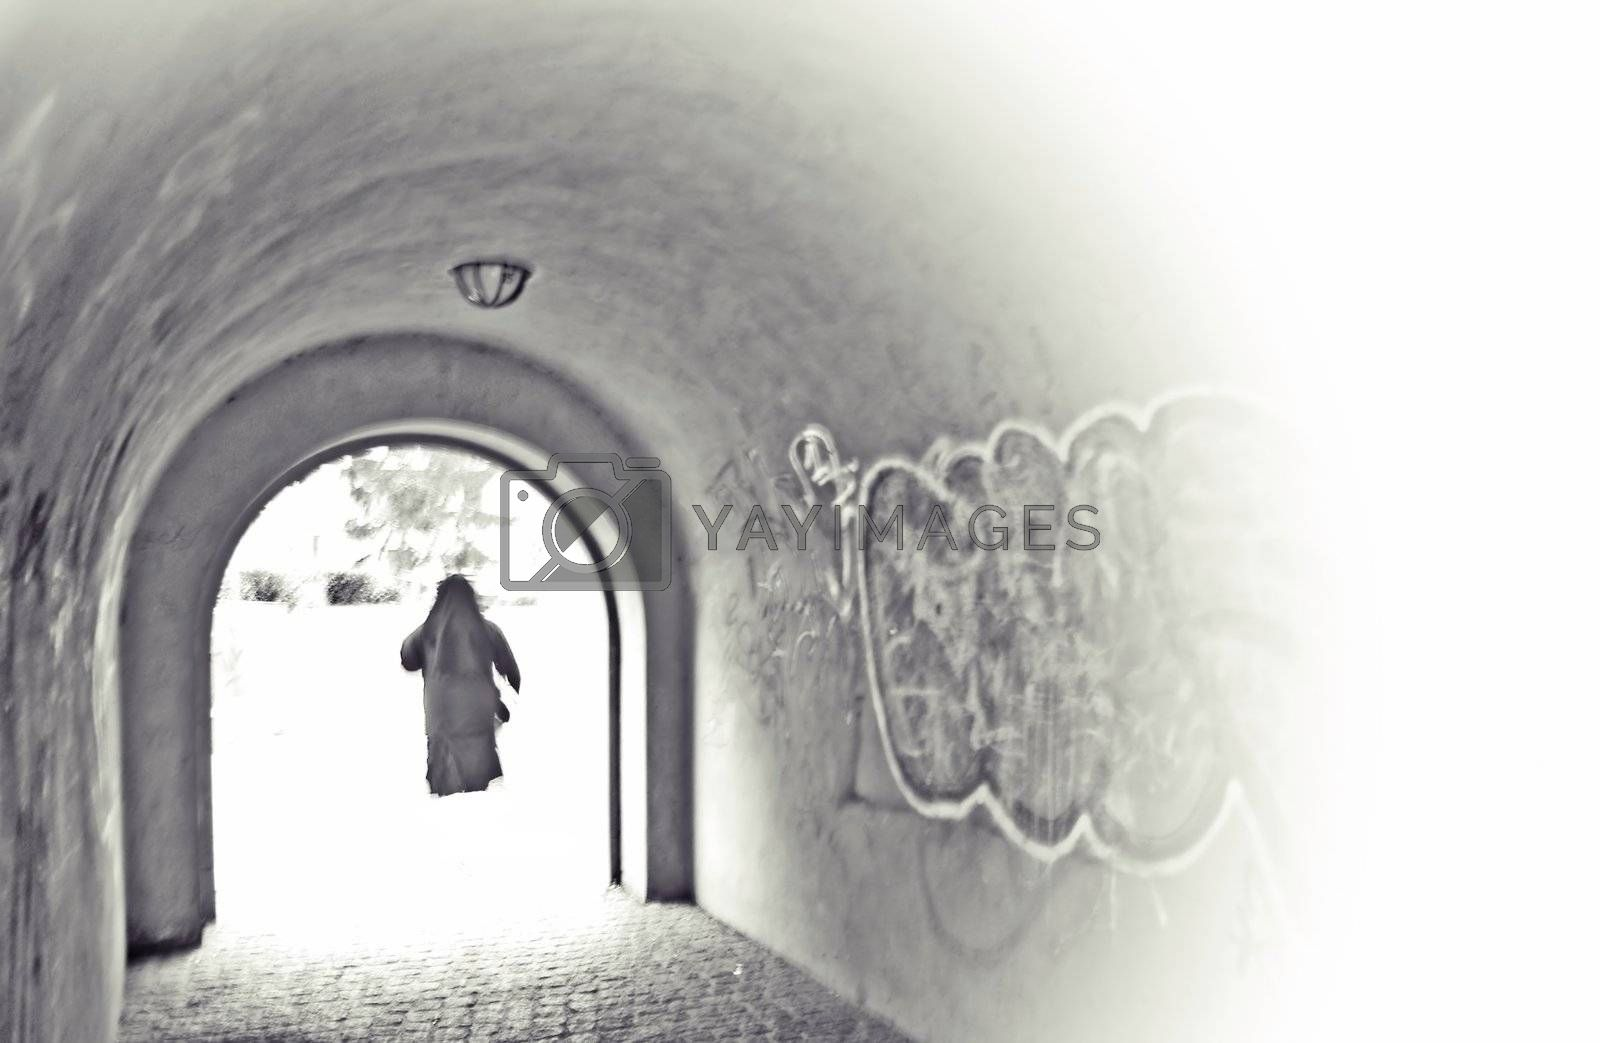 A nun passes through a tunnel and go right into the light.